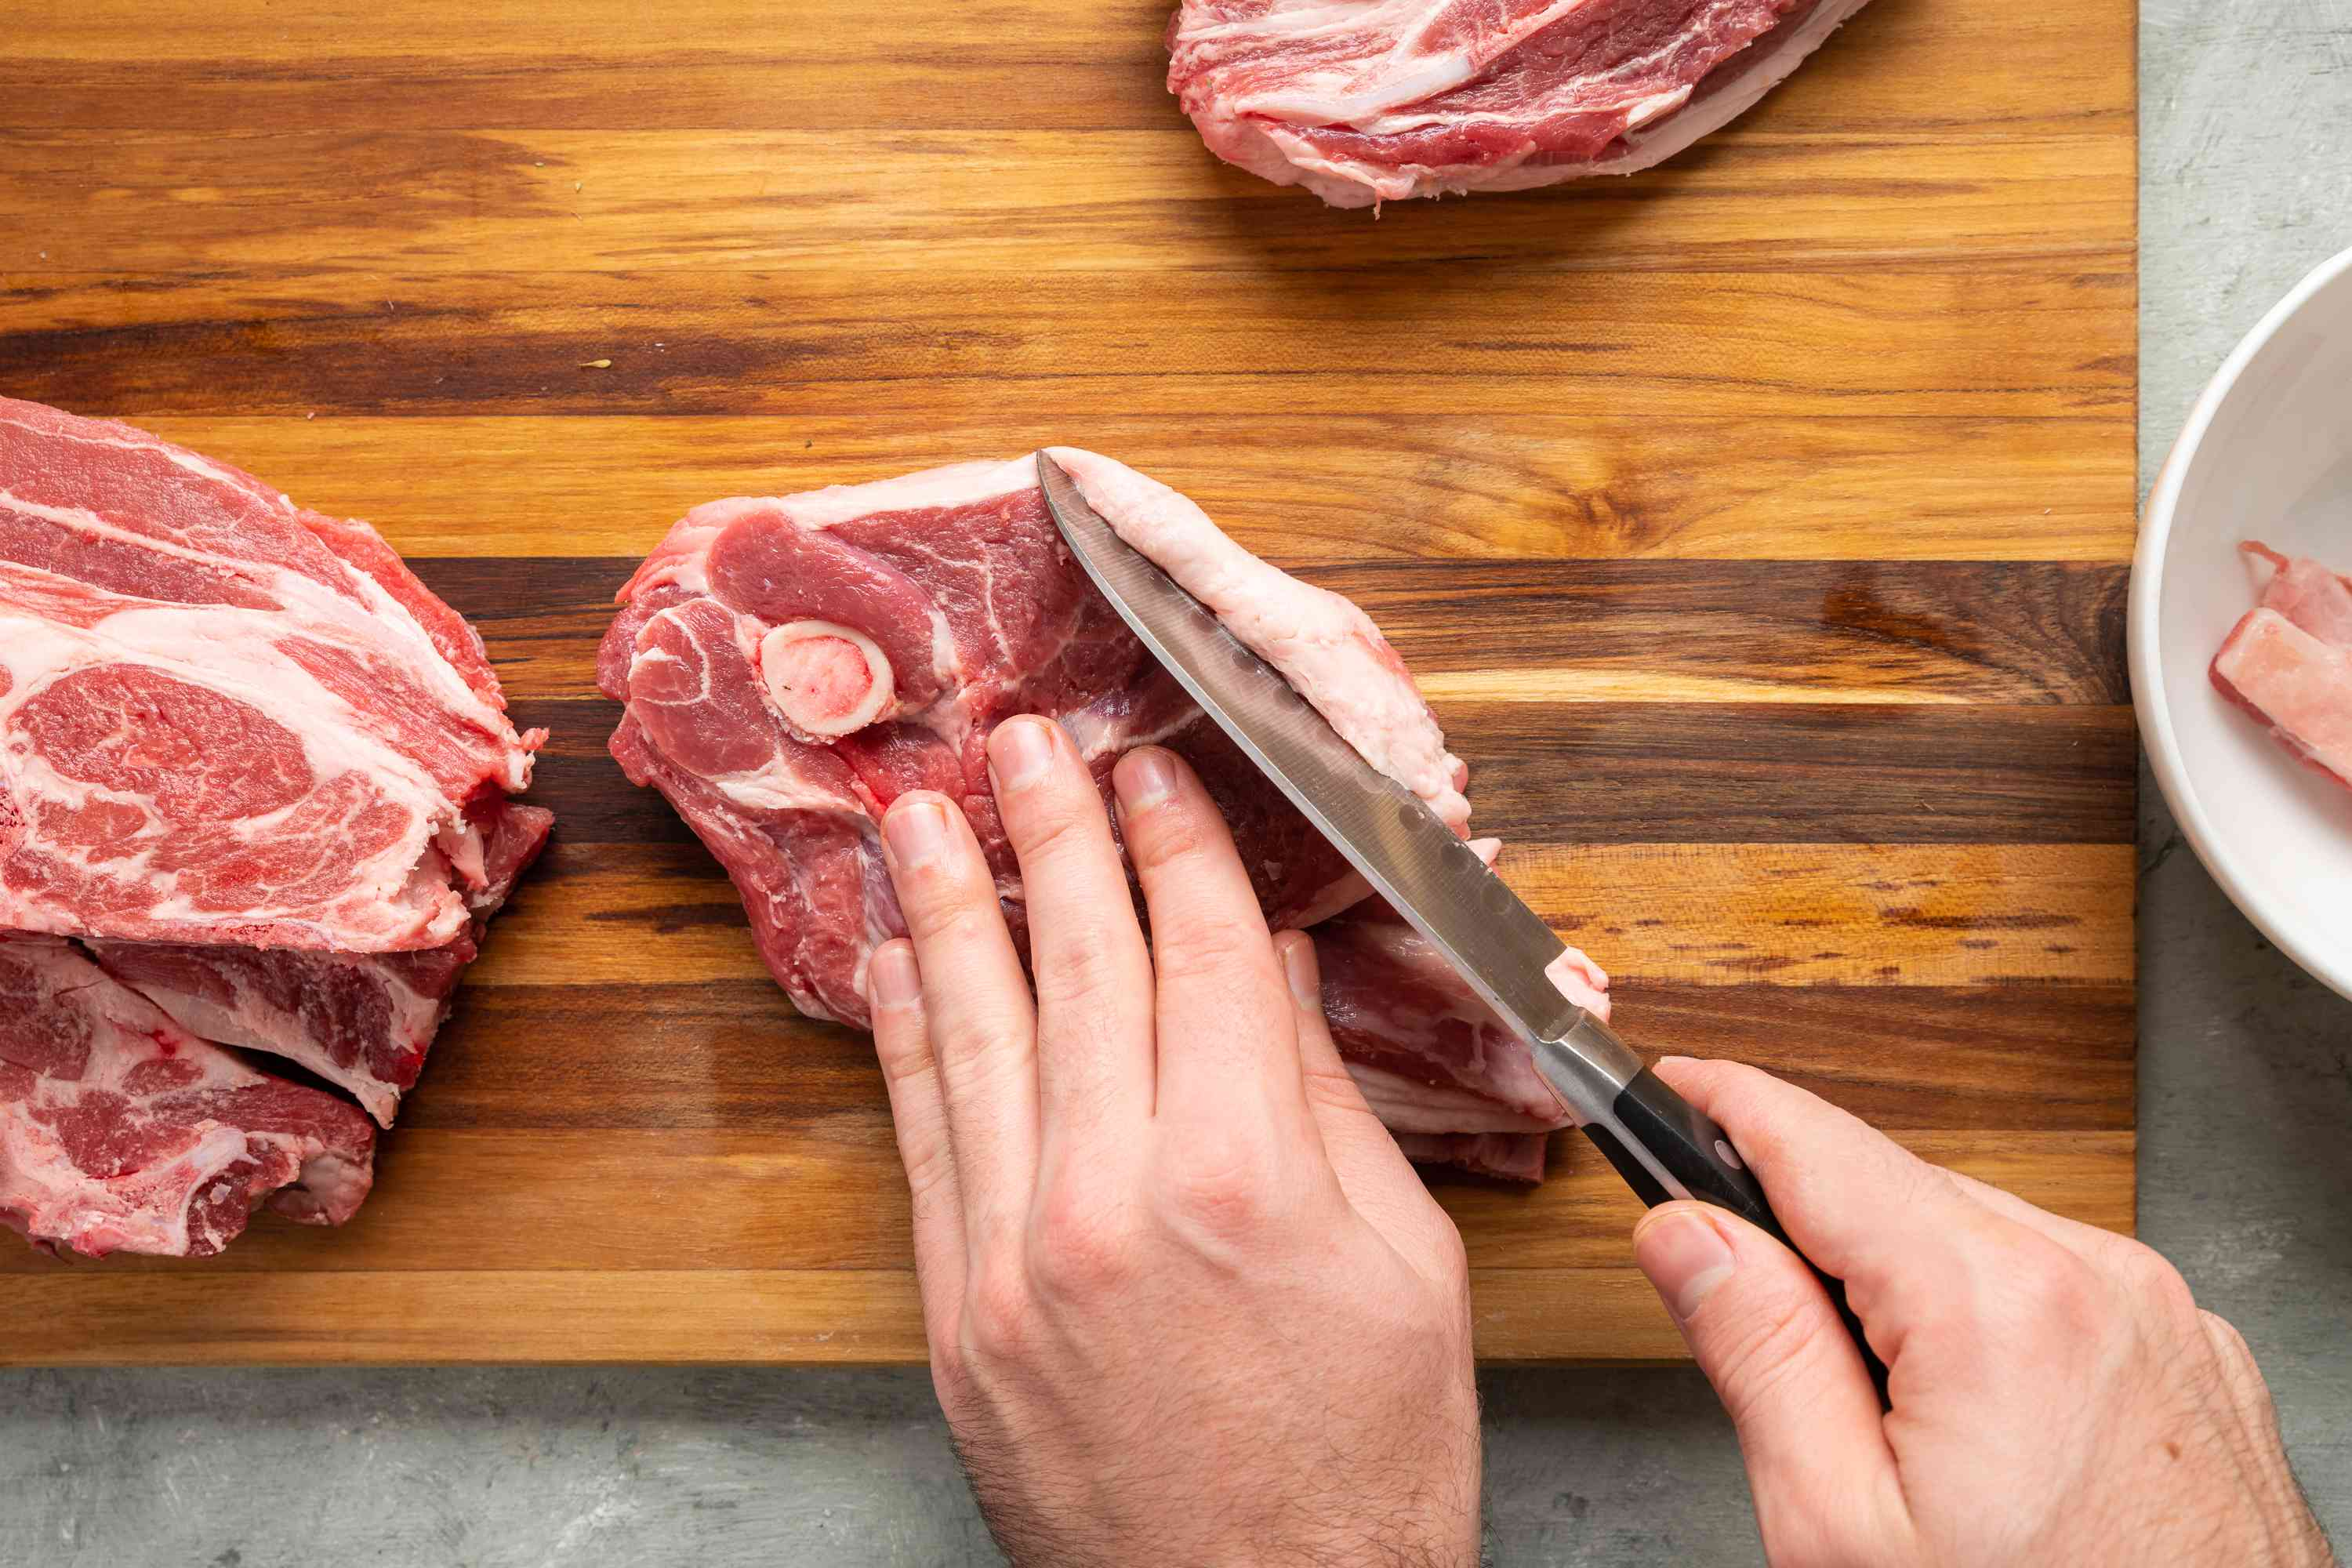 trim fat from the Lamb Chops